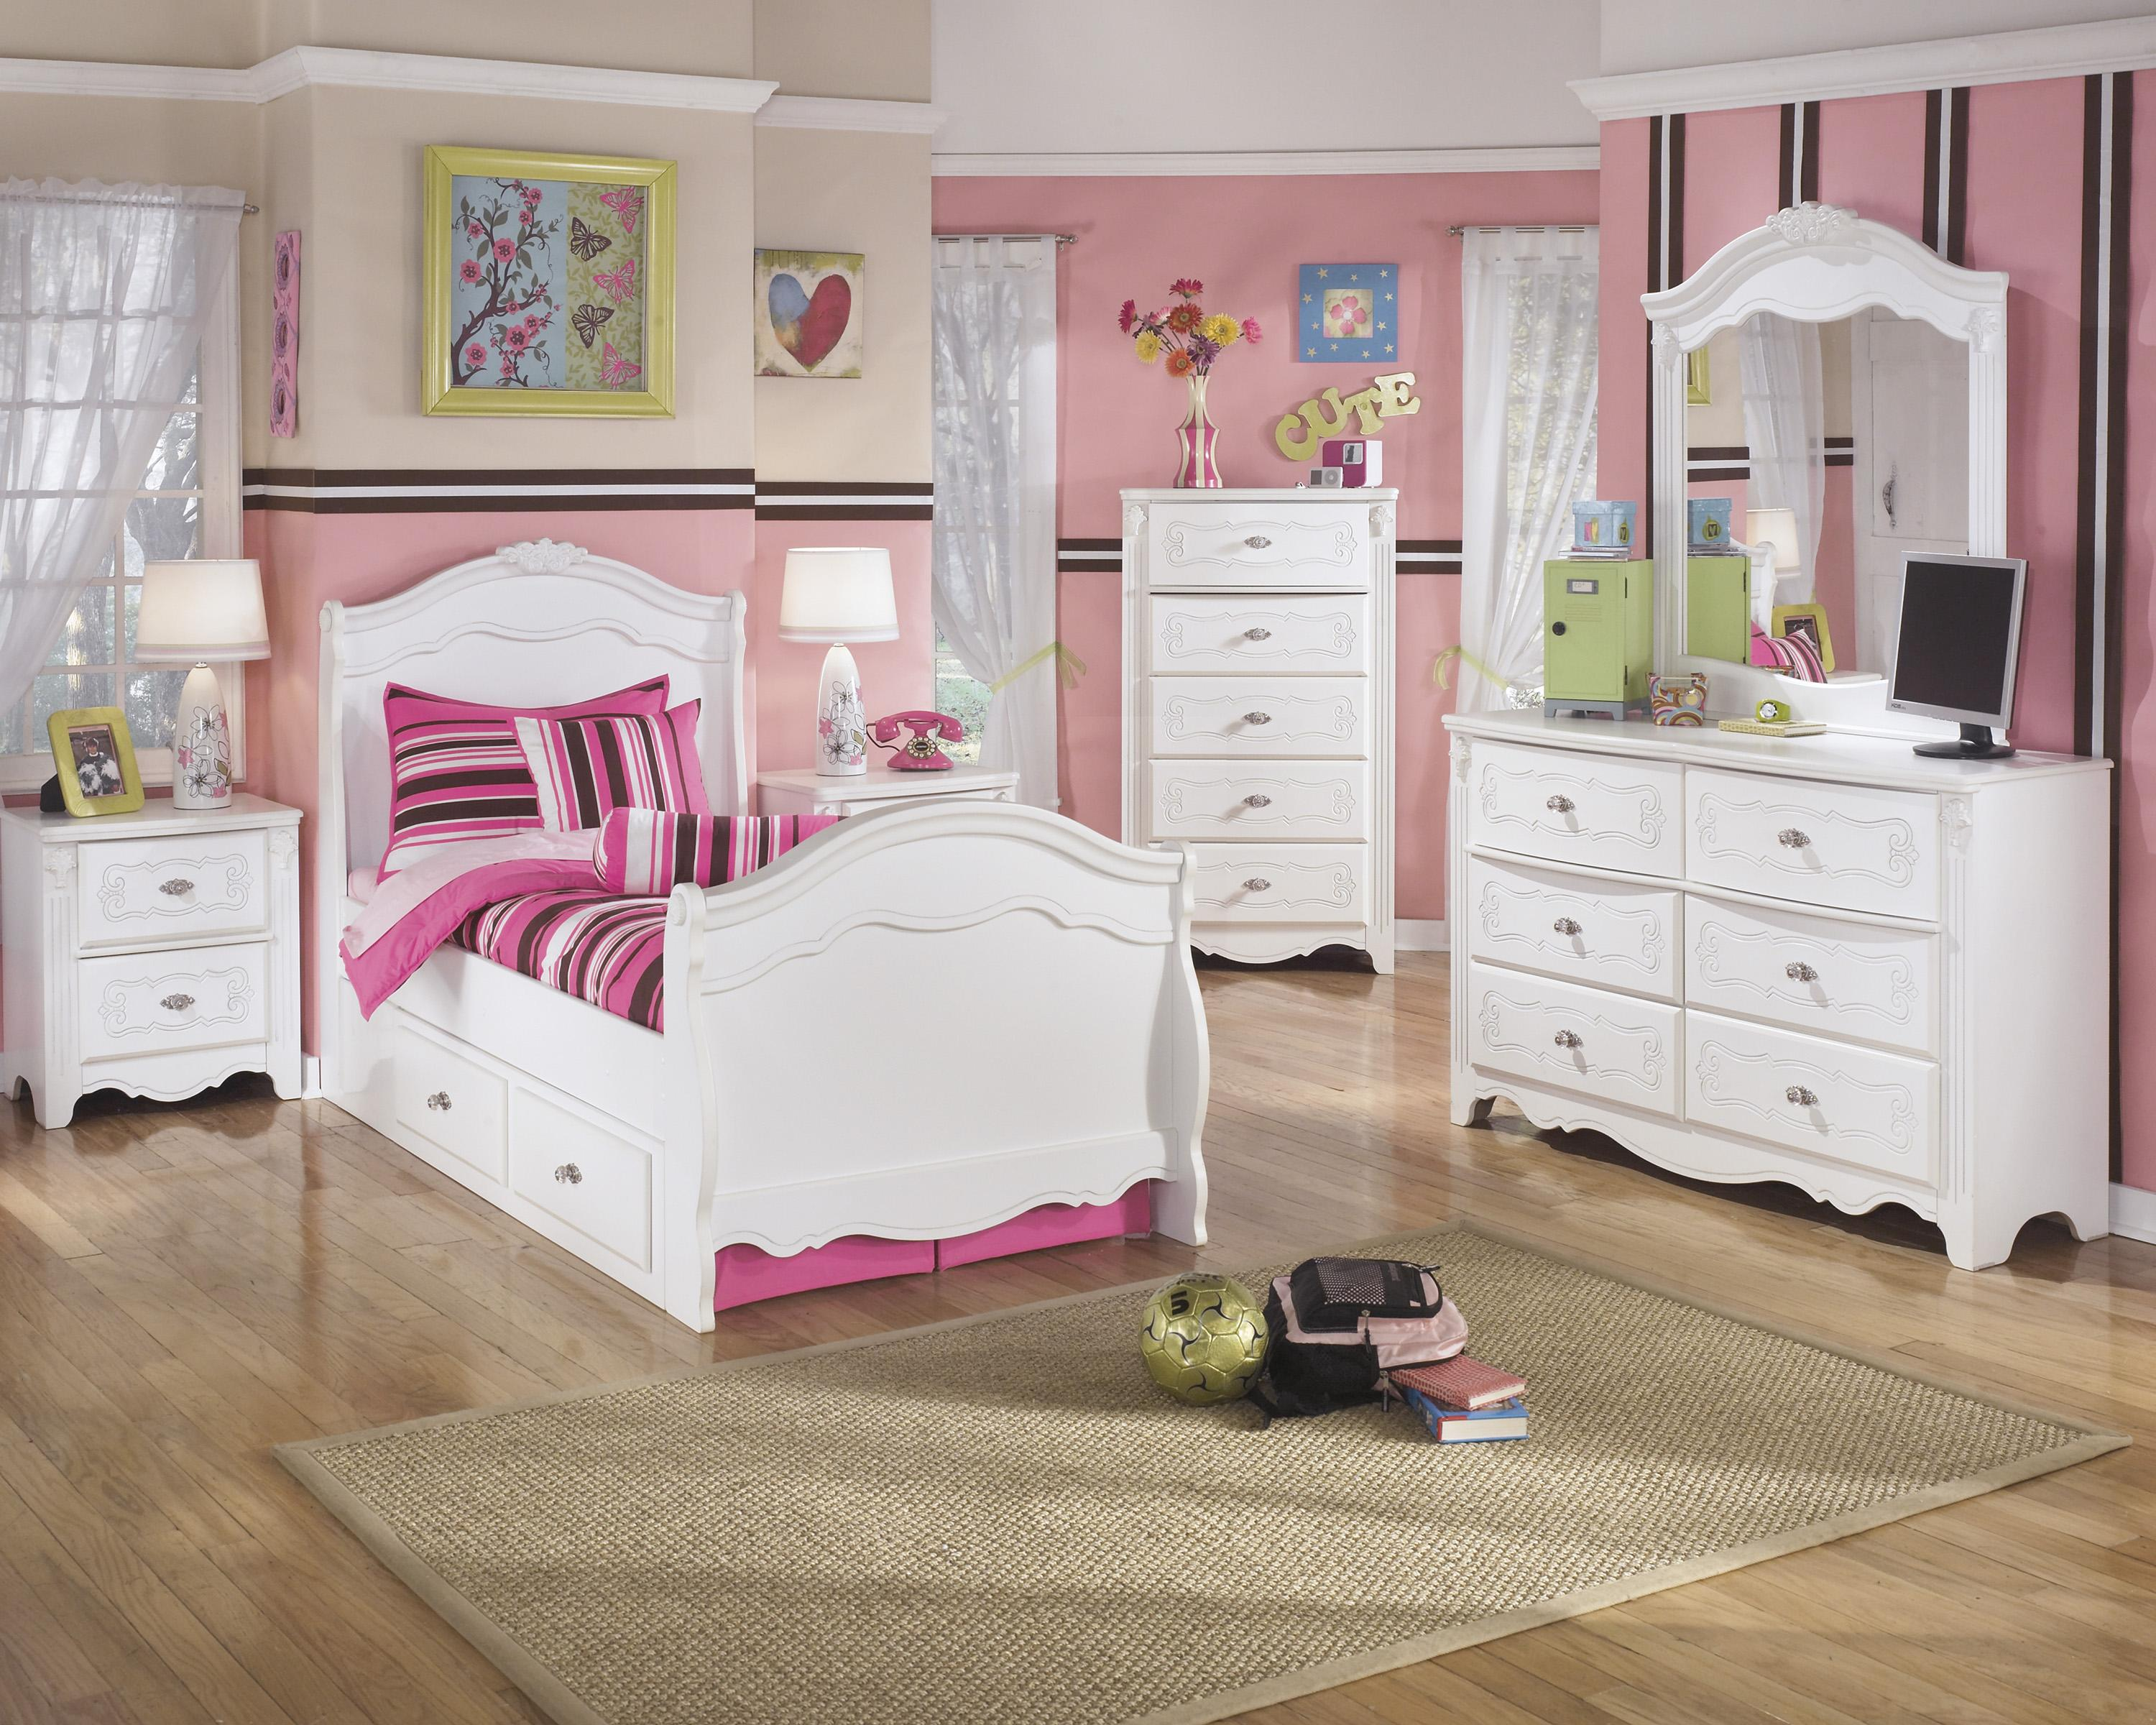 Signature Design by Ashley Exquisite Twin Bedroom Group - Item Number: B188 T Bedroom Group 2